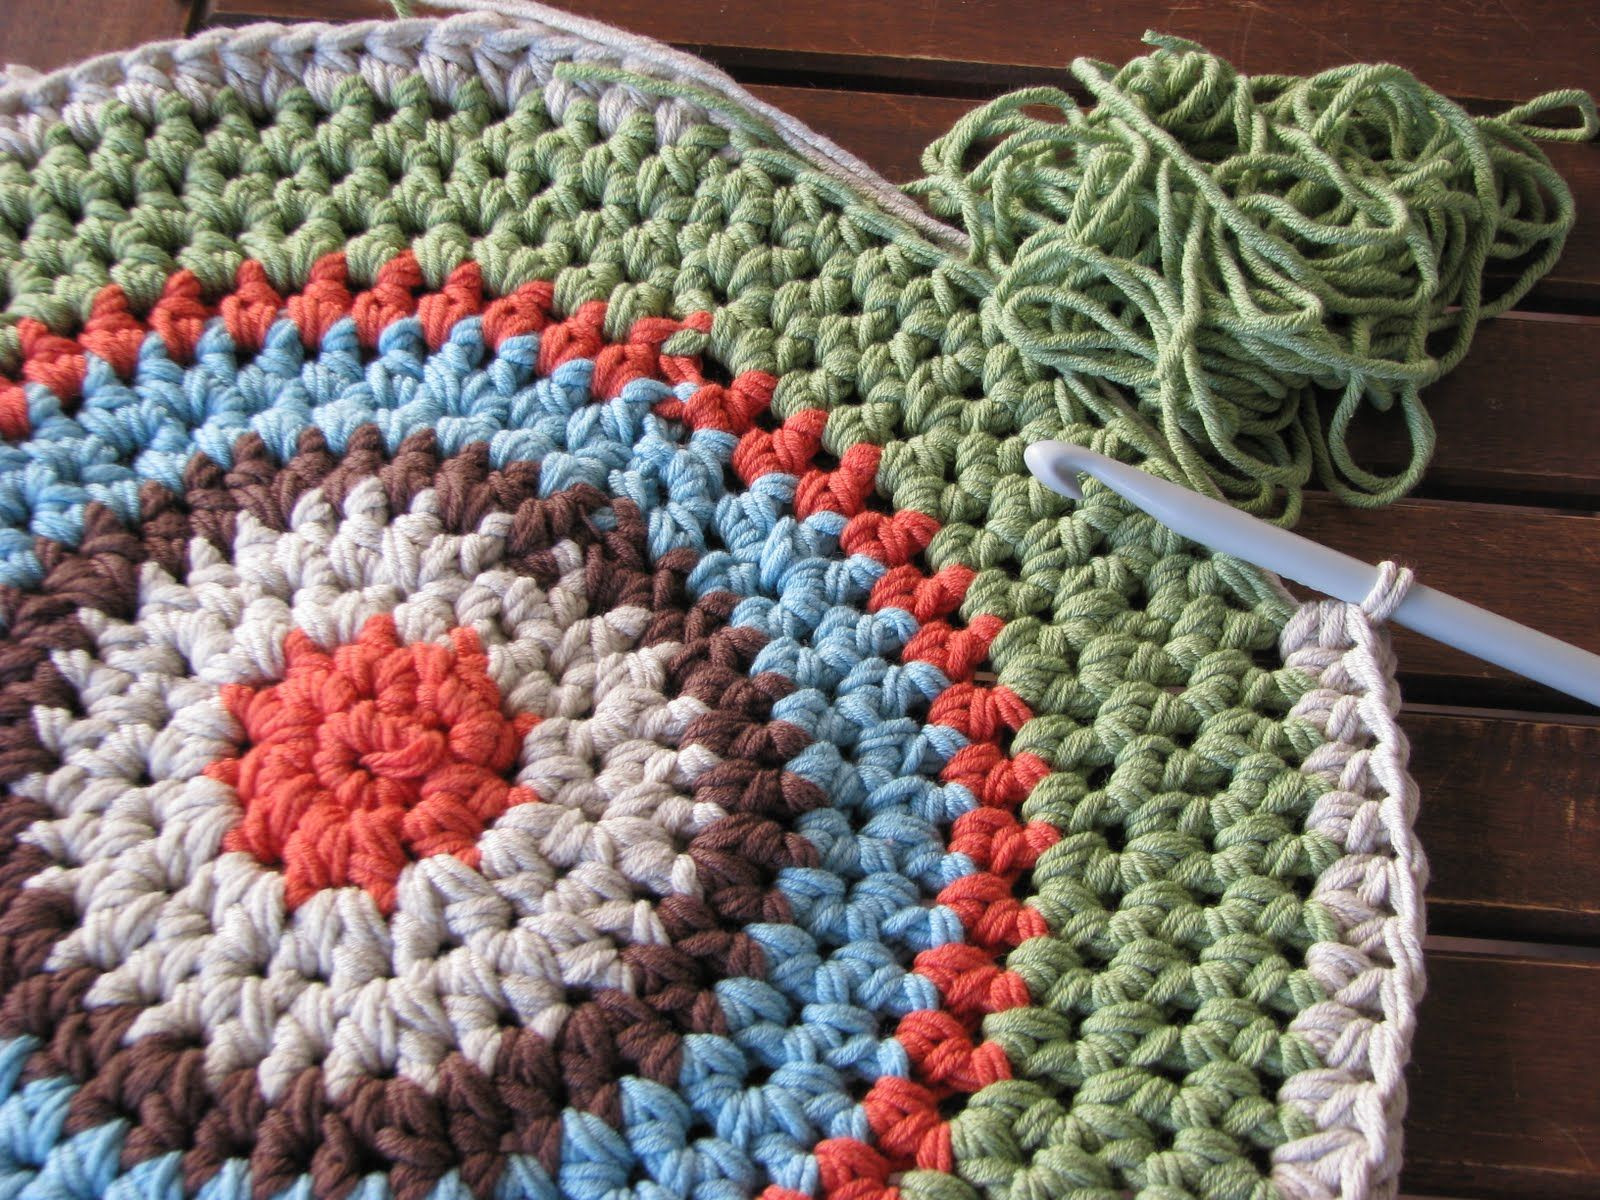 Unique Free Crocheted Rug Patterns Crochet Rug Patterns Rug Yarn for Crochet Of Gorgeous 50 Photos Rug Yarn for Crochet